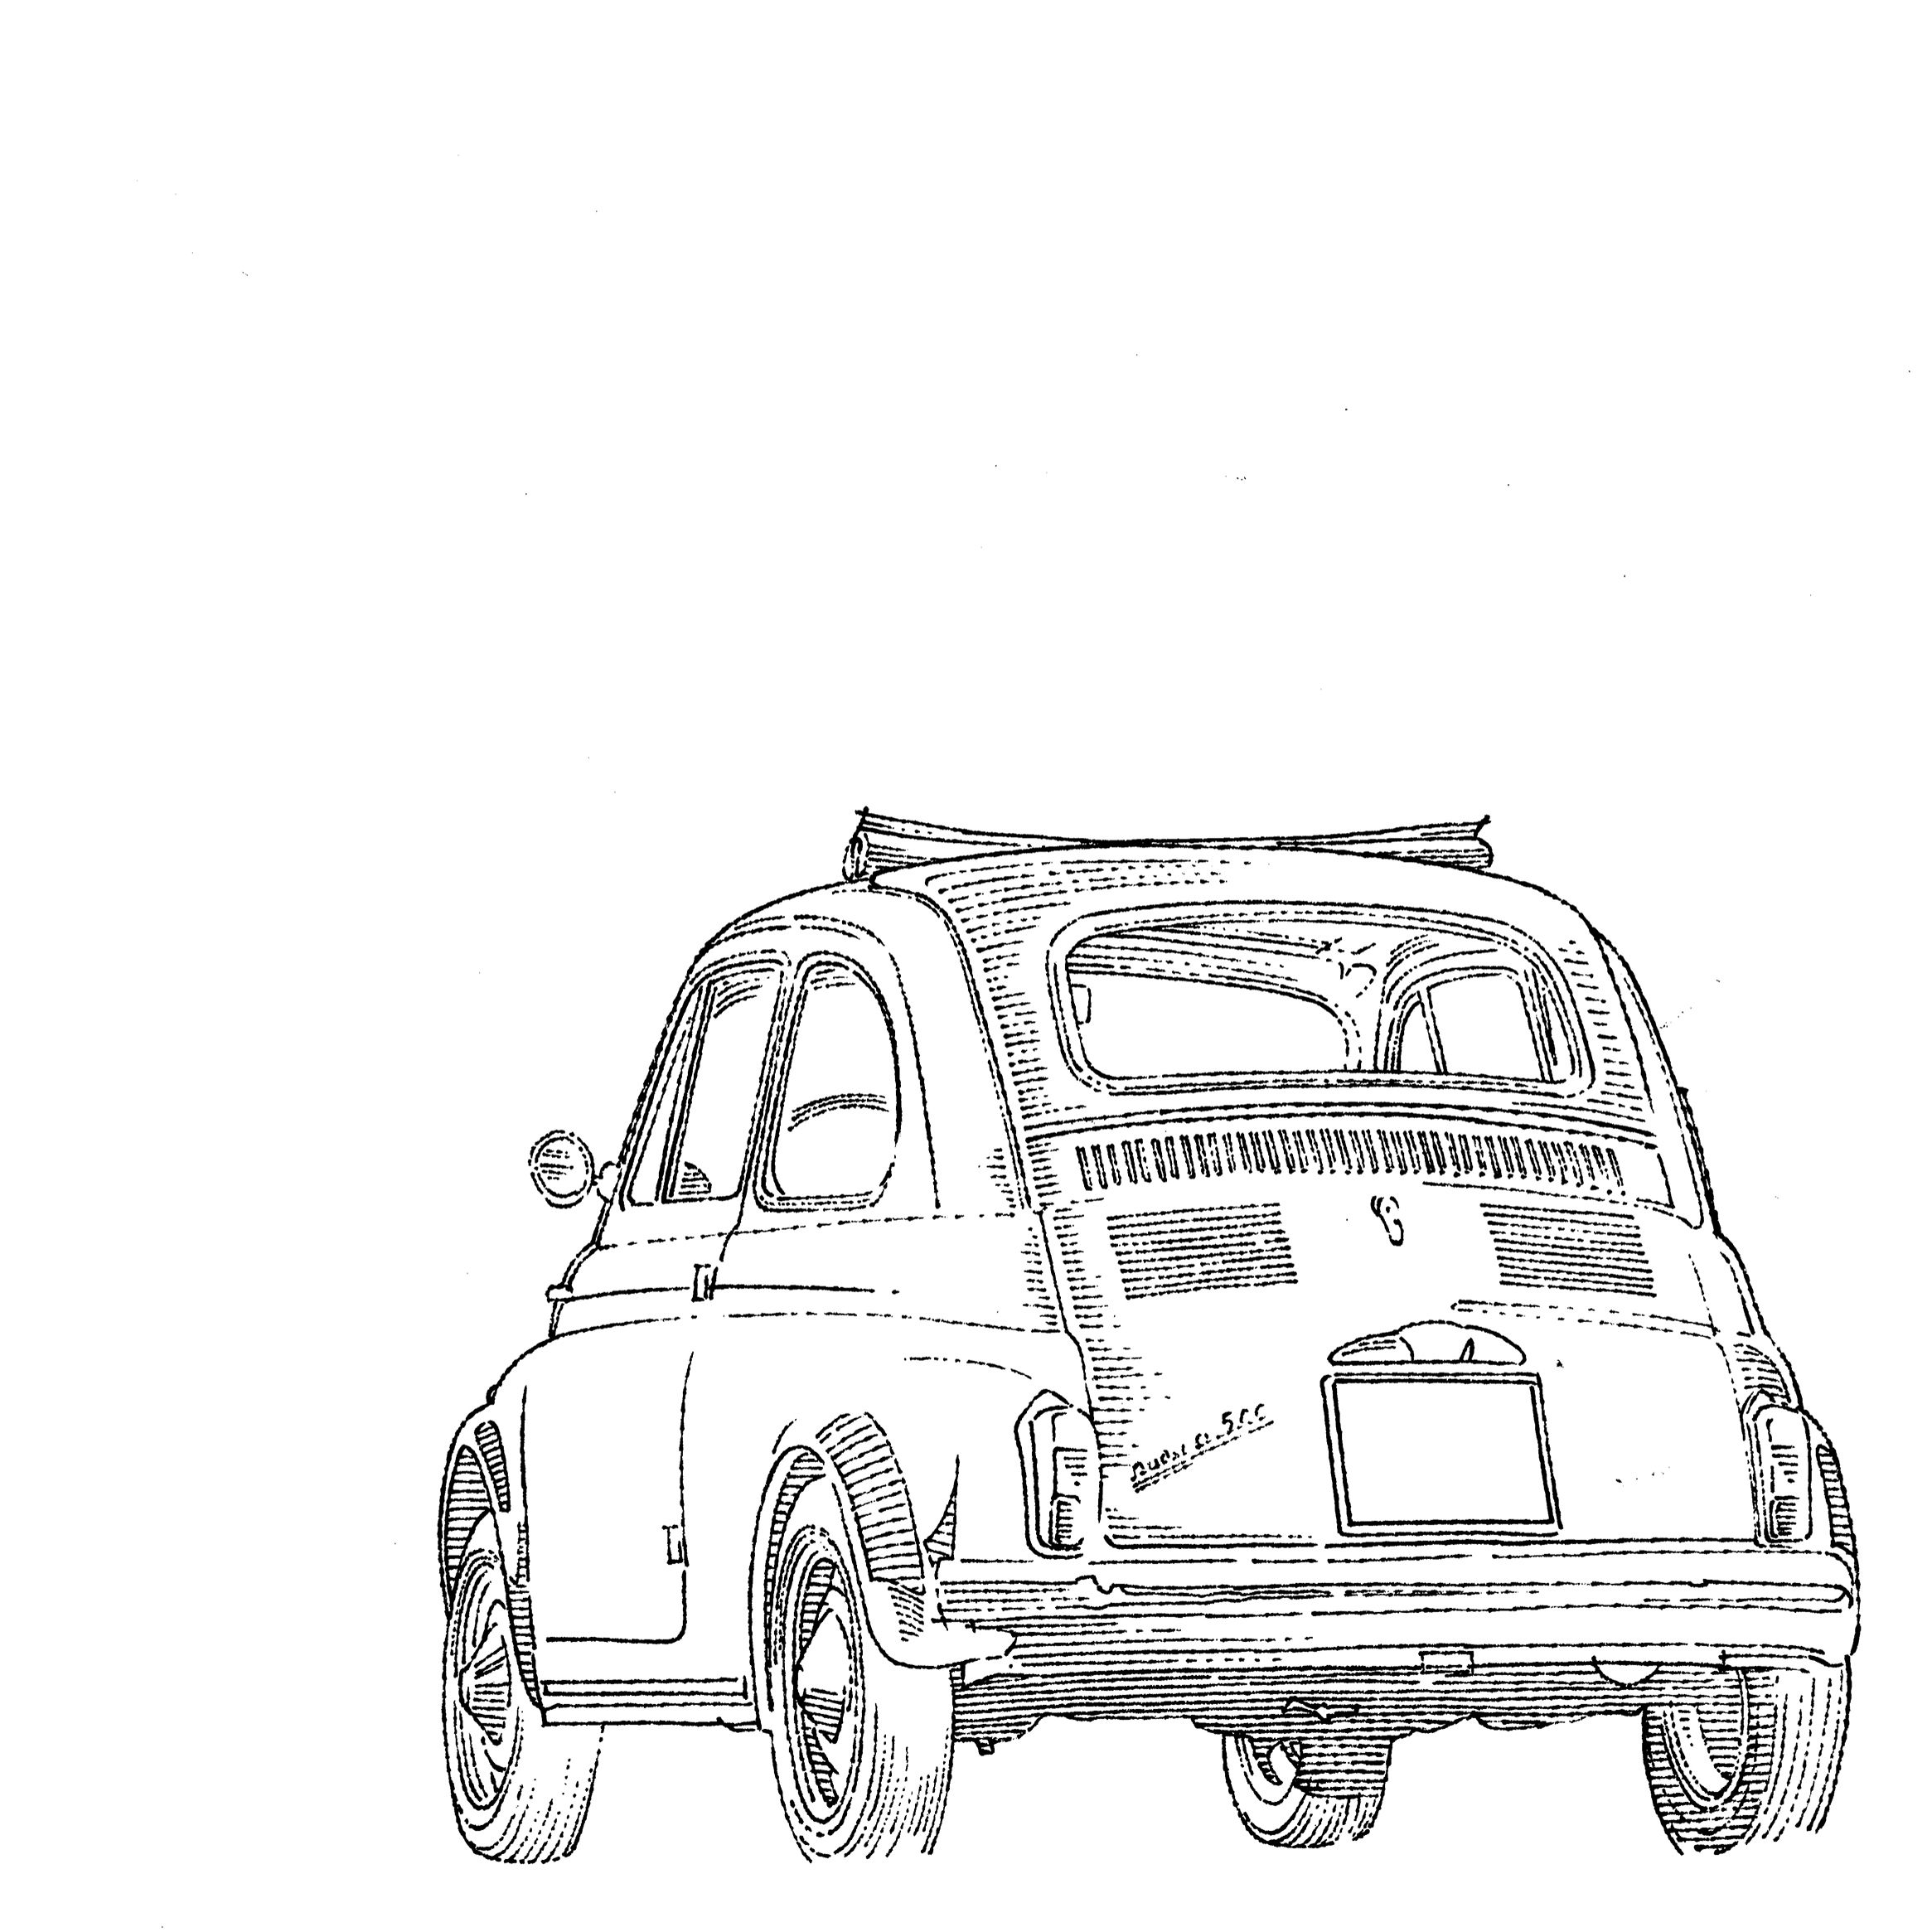 Fiat 500 Nuova Line Art Character Design Model Illustration Best Concept Animation Drawing Archive Library Pen Paper Refe Fiat 500 Auto Immagini